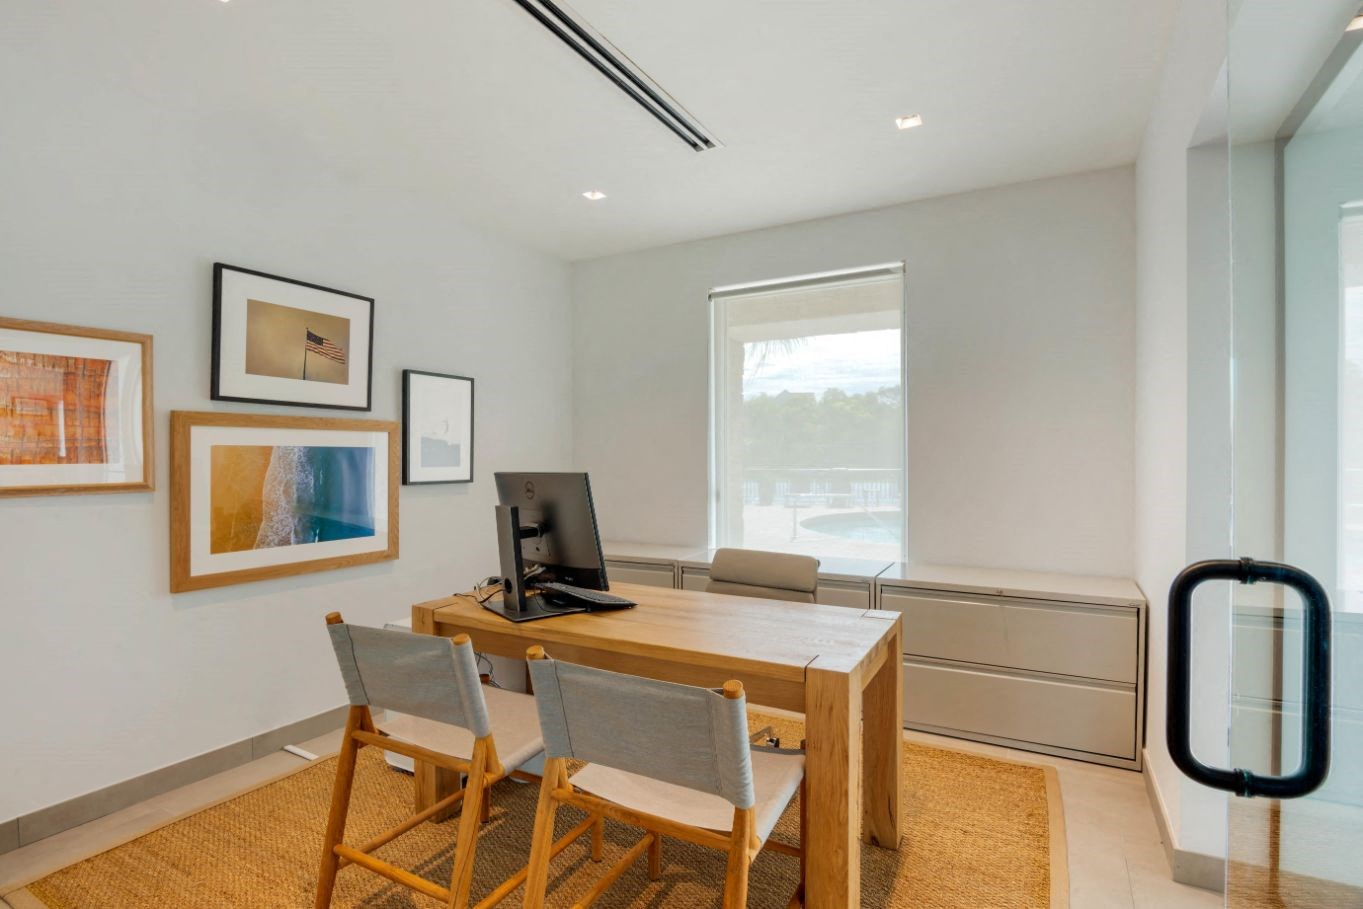 Leasing Office with art on walls and glass doors